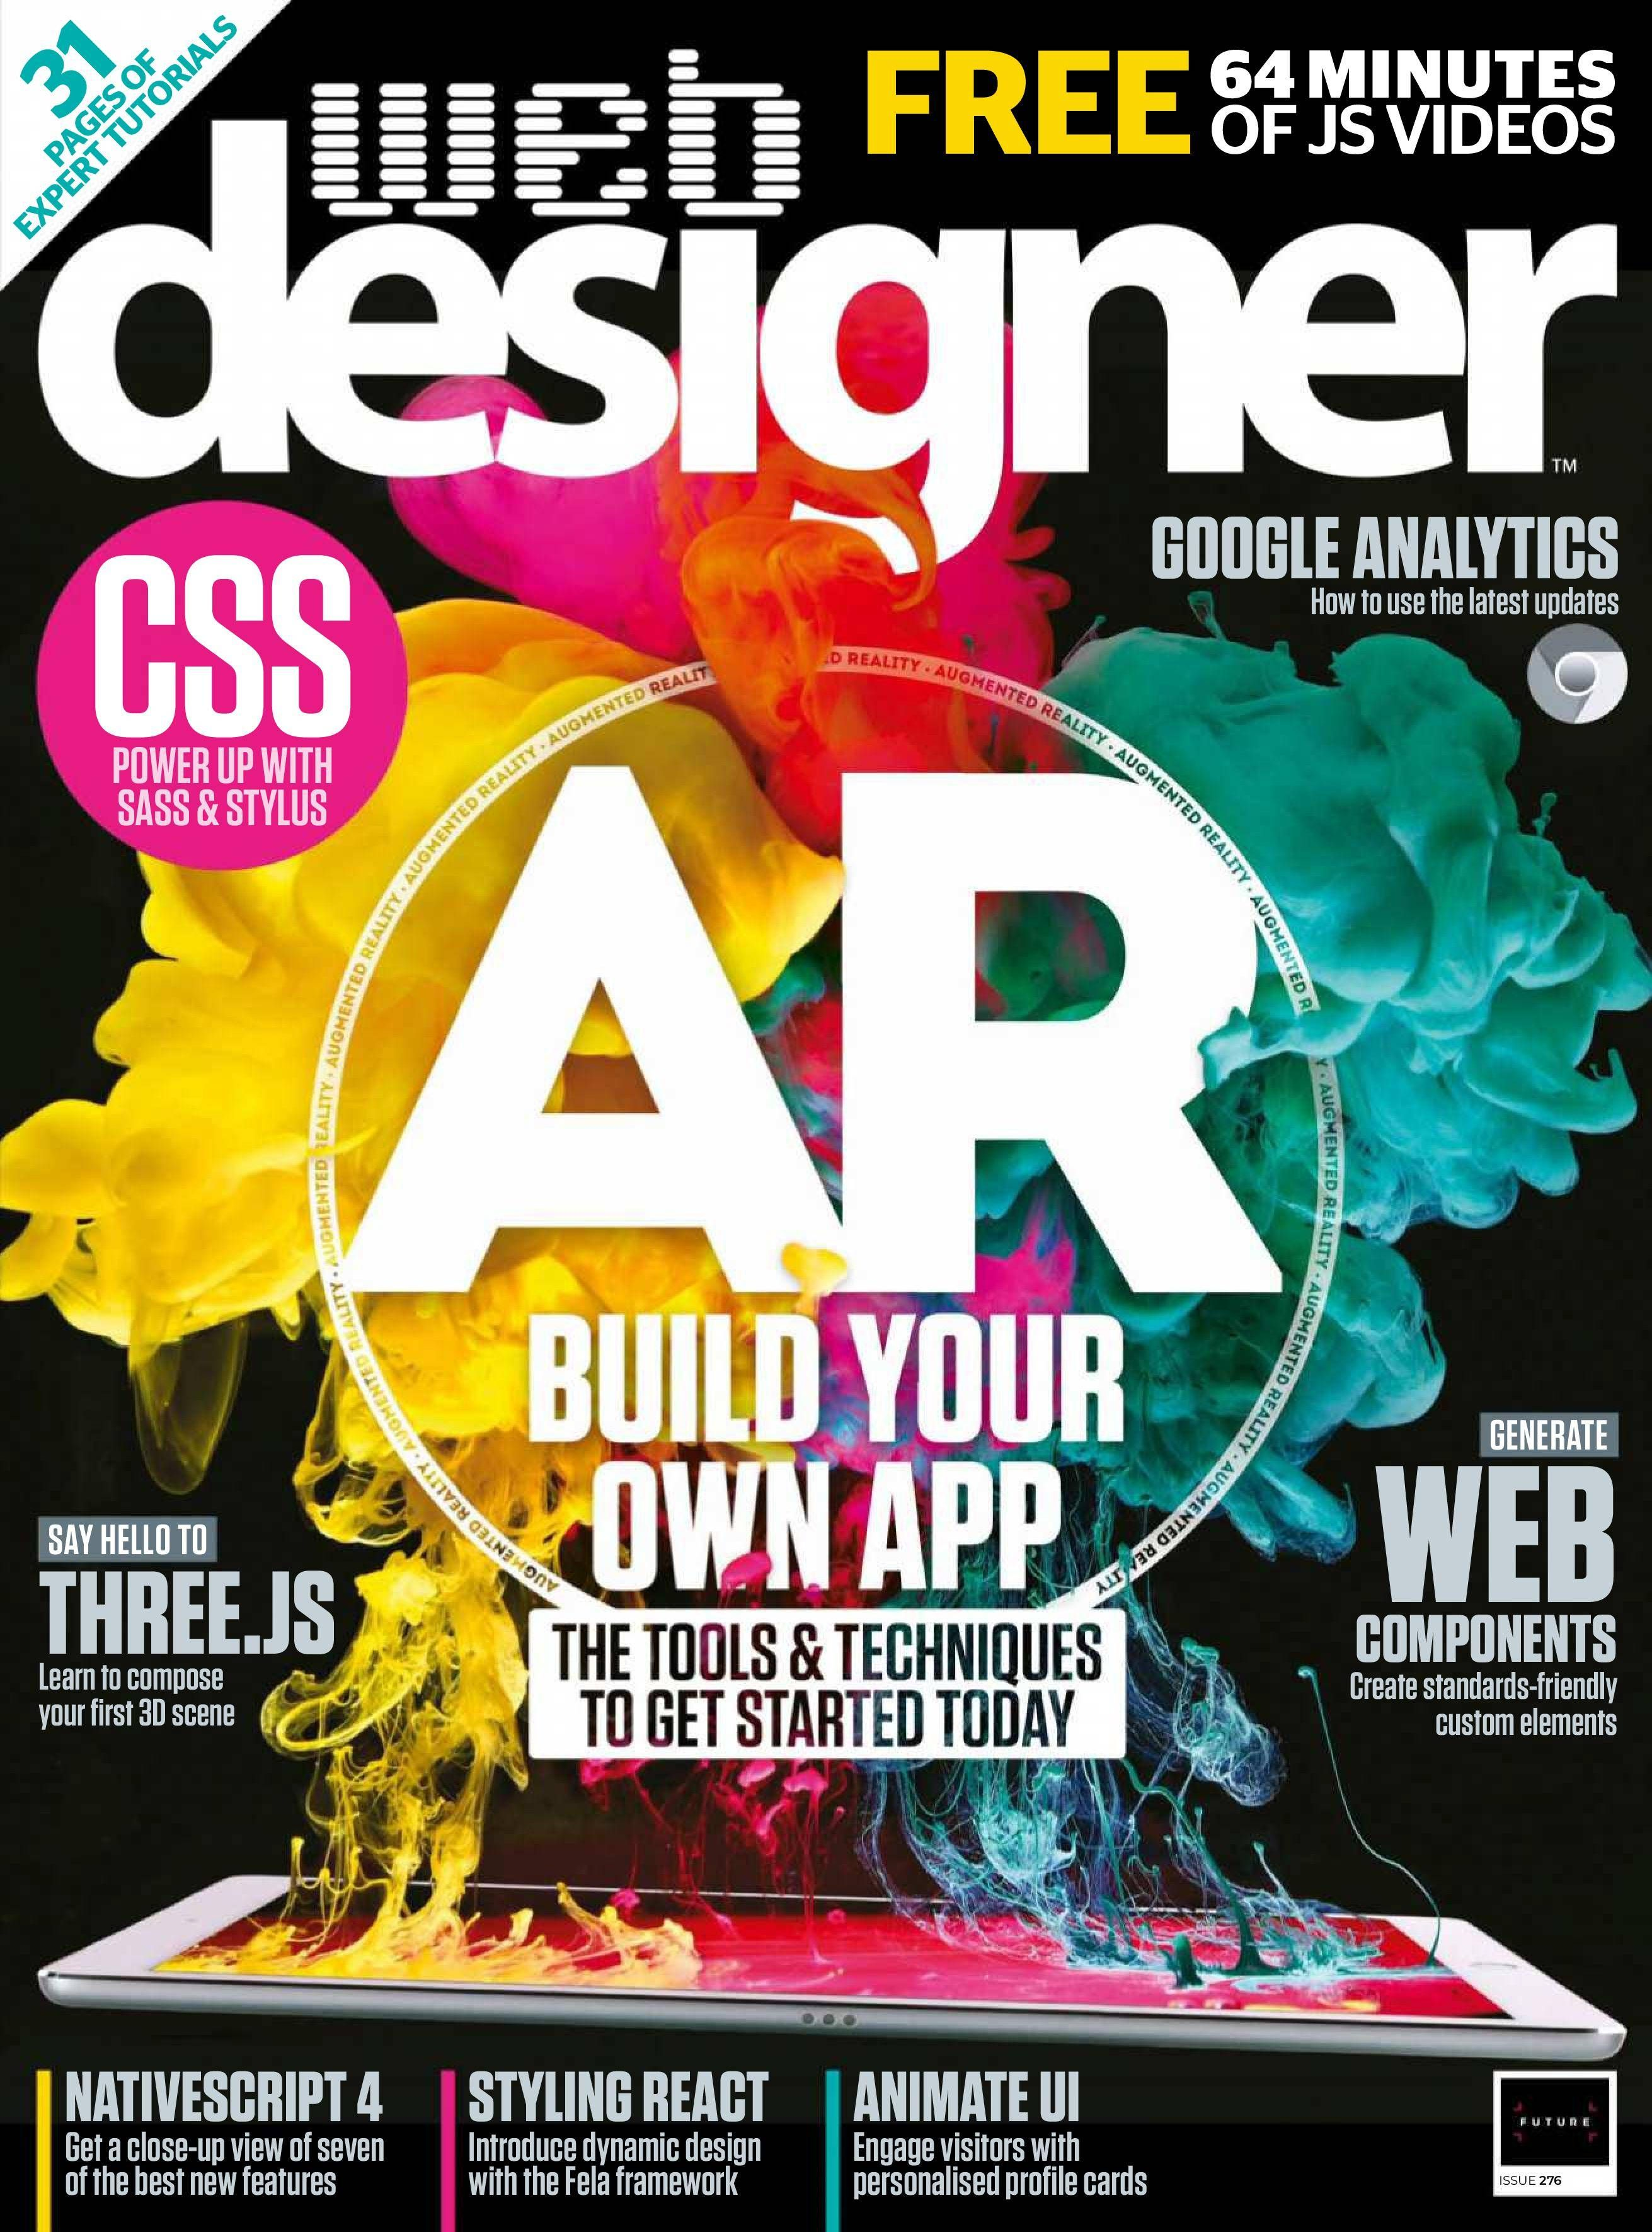 Web Designer Uk Issue 276 2018 P2p This Article Has Been Published At Rlslog Net Visit Our Site For Full Con Web Design Web Design Quotes Online Web Design